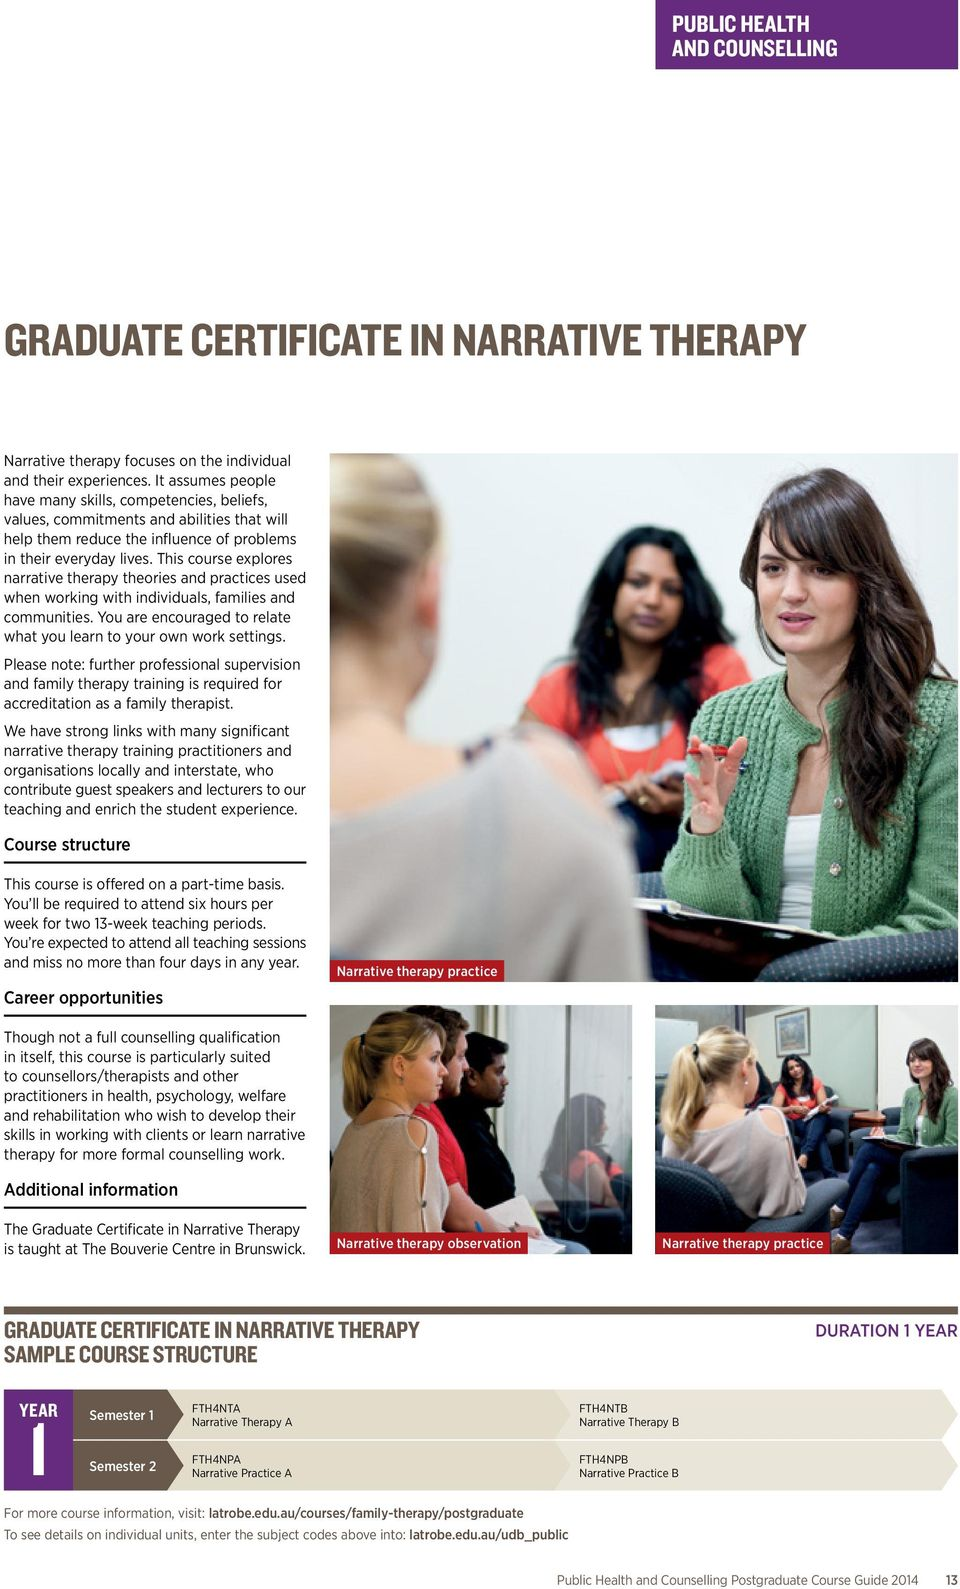 This course explores narrative therapy theories and practices used when working with individuals, families and communities. You are encouraged to relate what you learn to your own work settings.